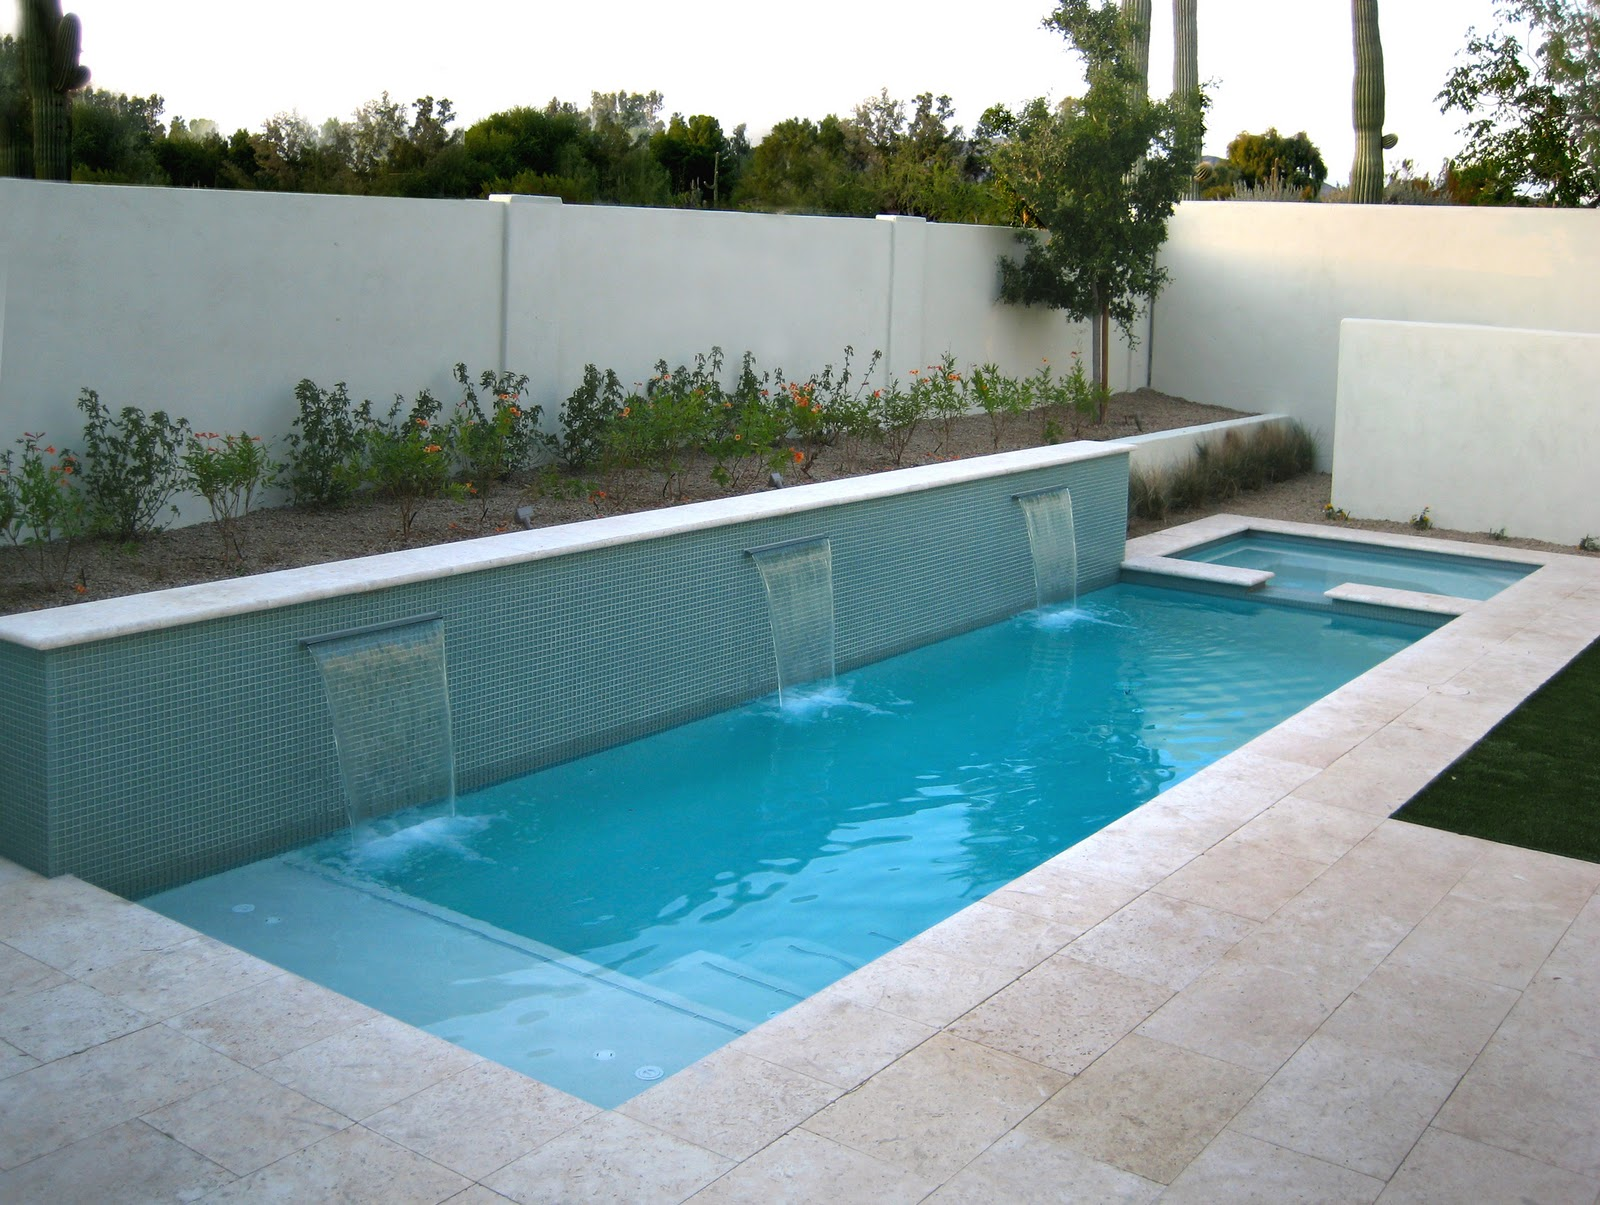 25 fabulous small backyard designs with swimming pool for Swimming pool ideas